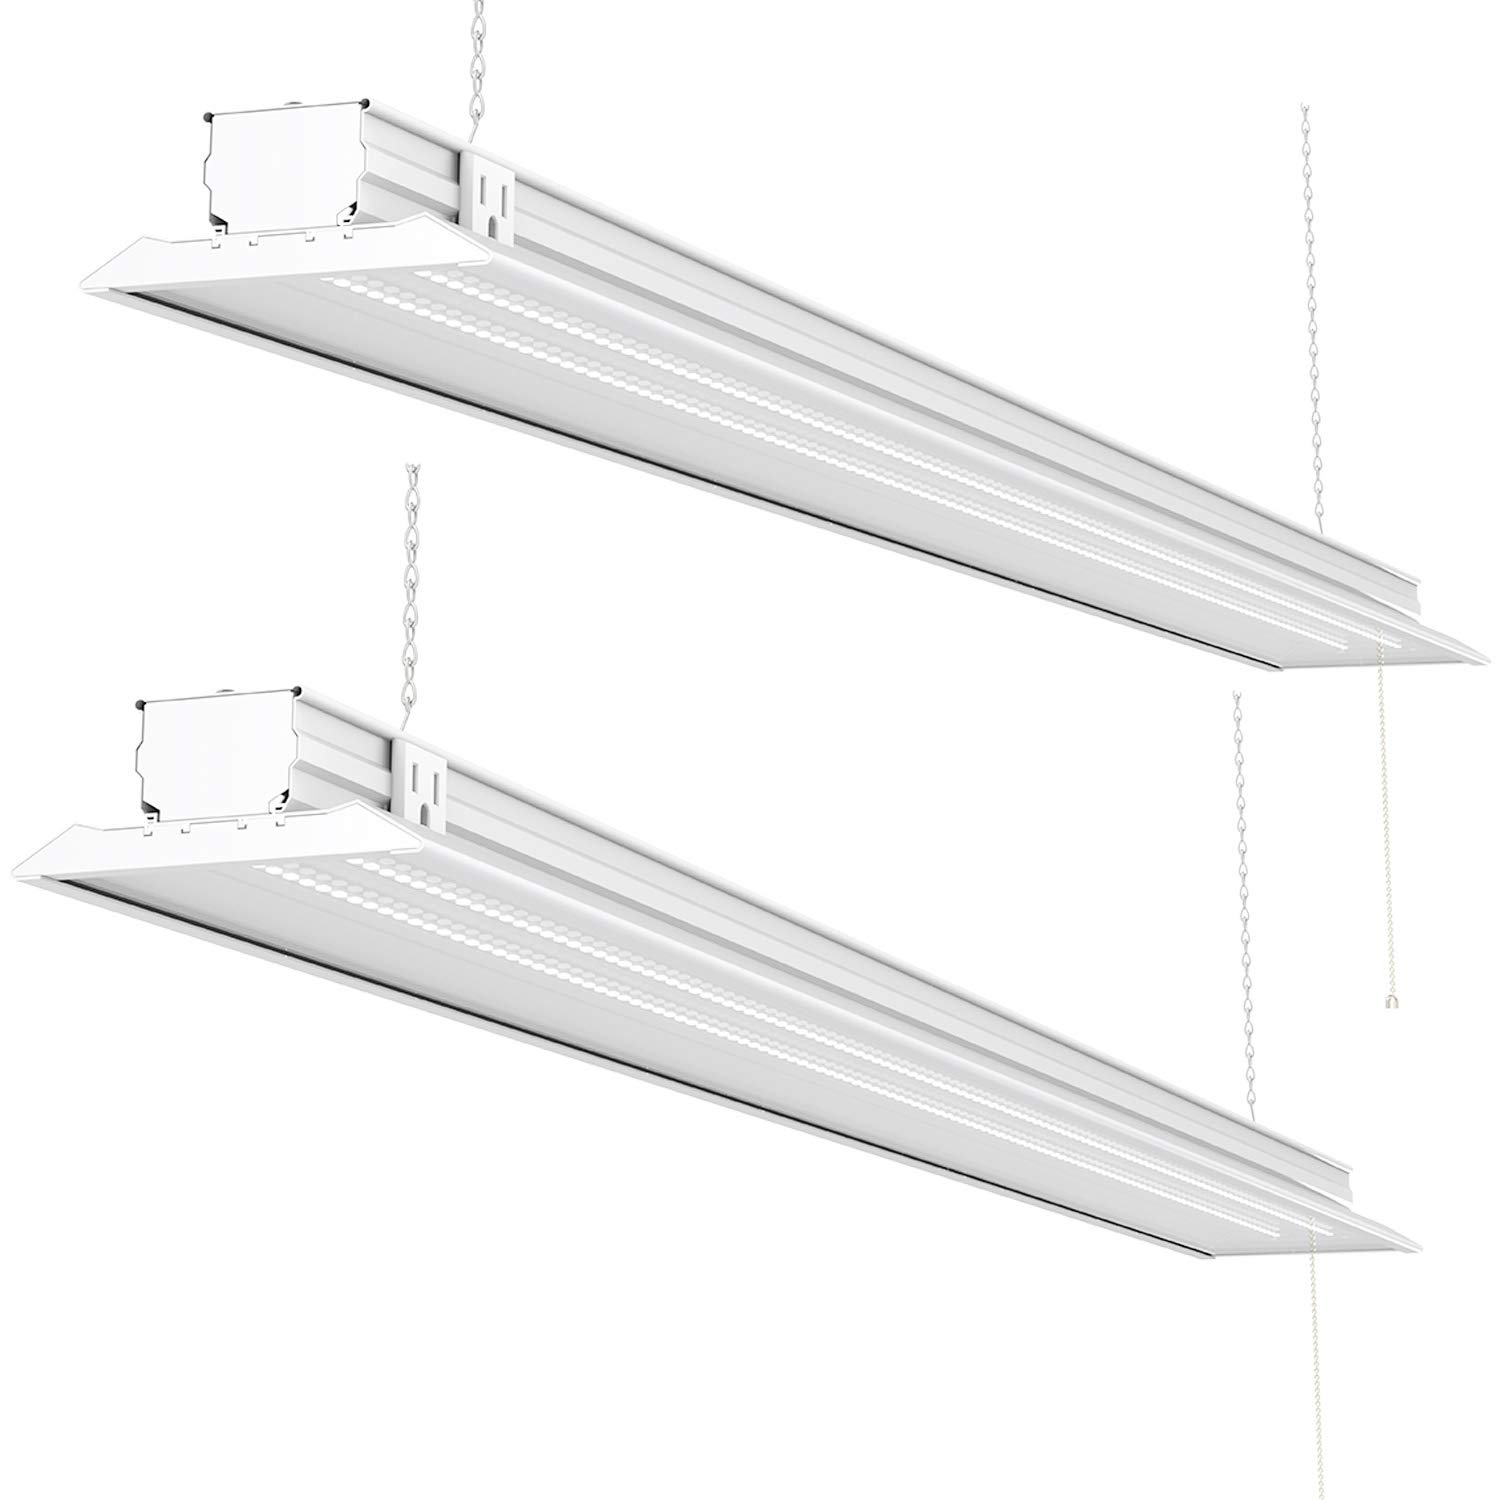 Sunco Lighting 2 Pack Flat LED Shop Light, 4 FT, Linkable Double Integrated LED, 40W=300W, 5000K Daylight, 4500 LM, Clear Lens, Plug in, Suspension Mount, Pull Chain, Garage - ETL + Energy Star by Sunco Lighting